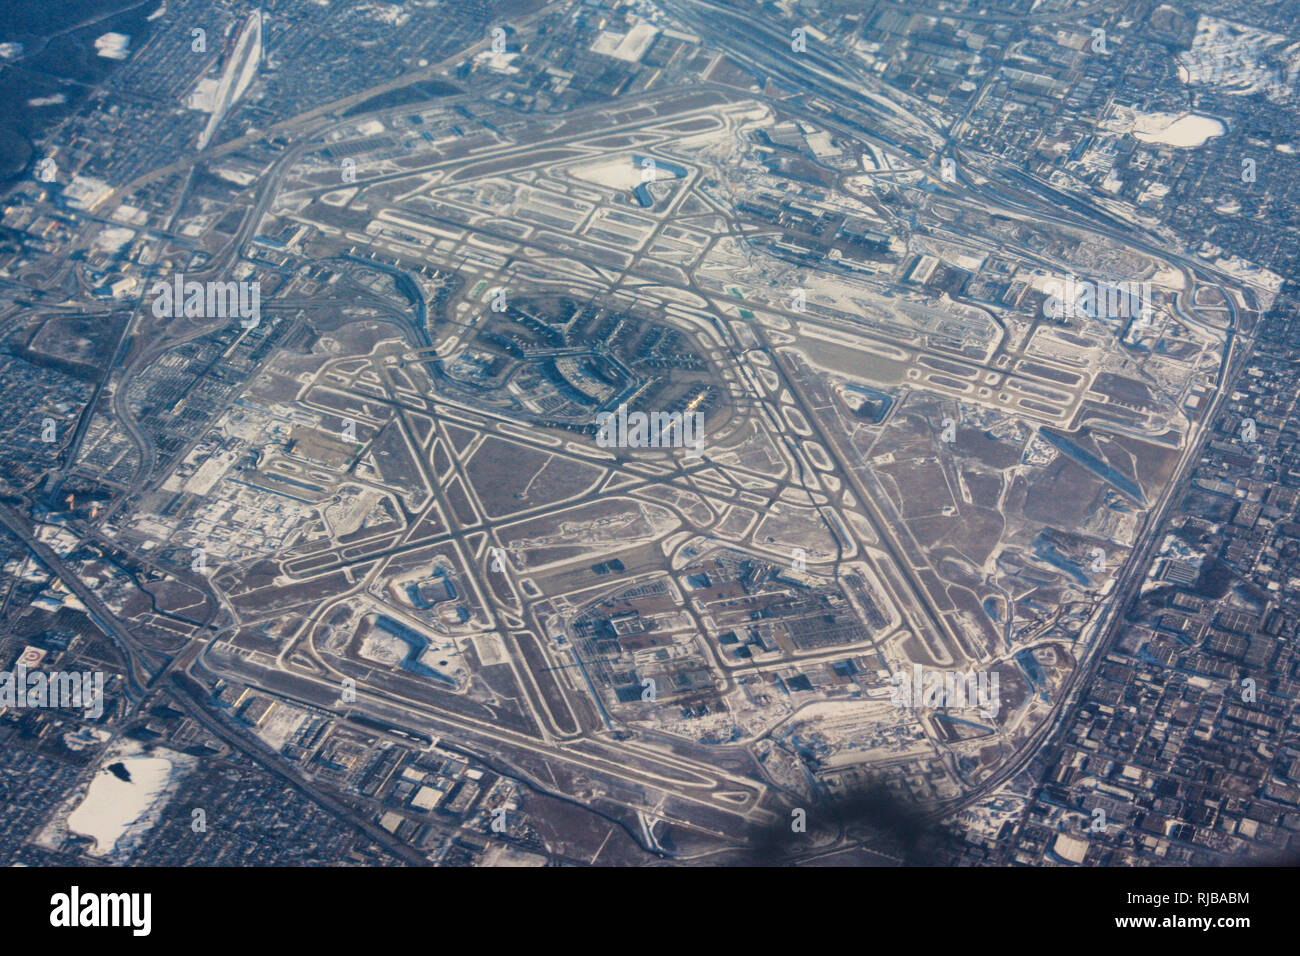 Chicago O'Hare Airport, flight from London Heathrow to Fort Worth Texas - Stock Image